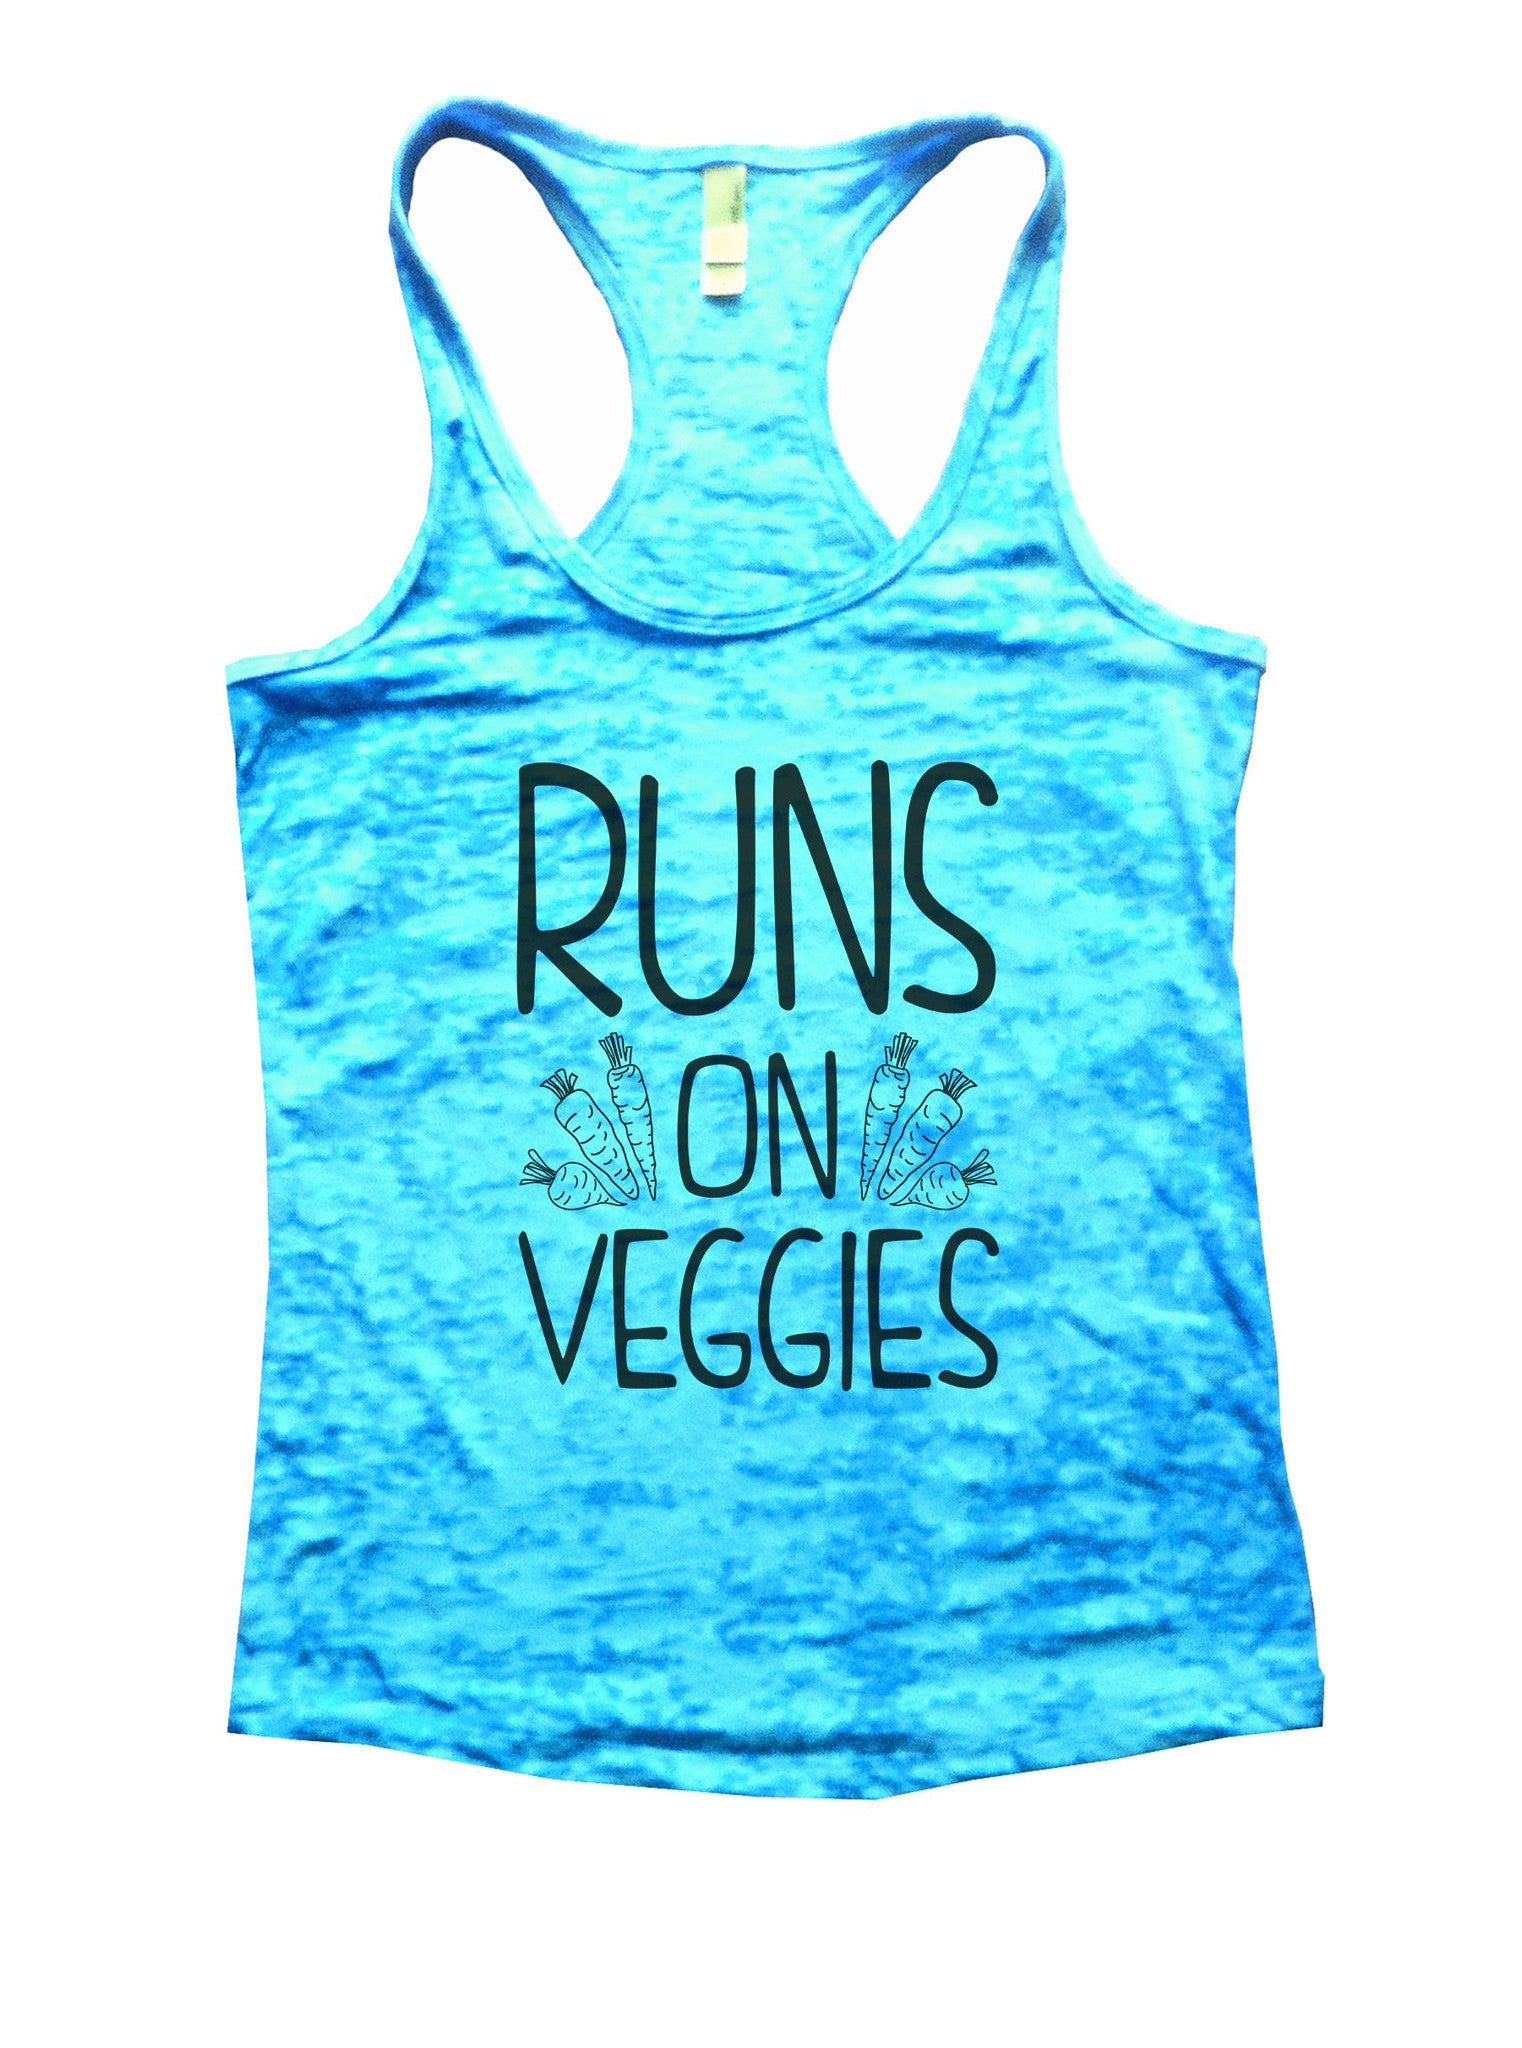 Runs On Veggies Burnout Tank Top By BurnoutTankTops.com - 1074 - Funny Shirts Tank Tops Burnouts and Triblends  - 4